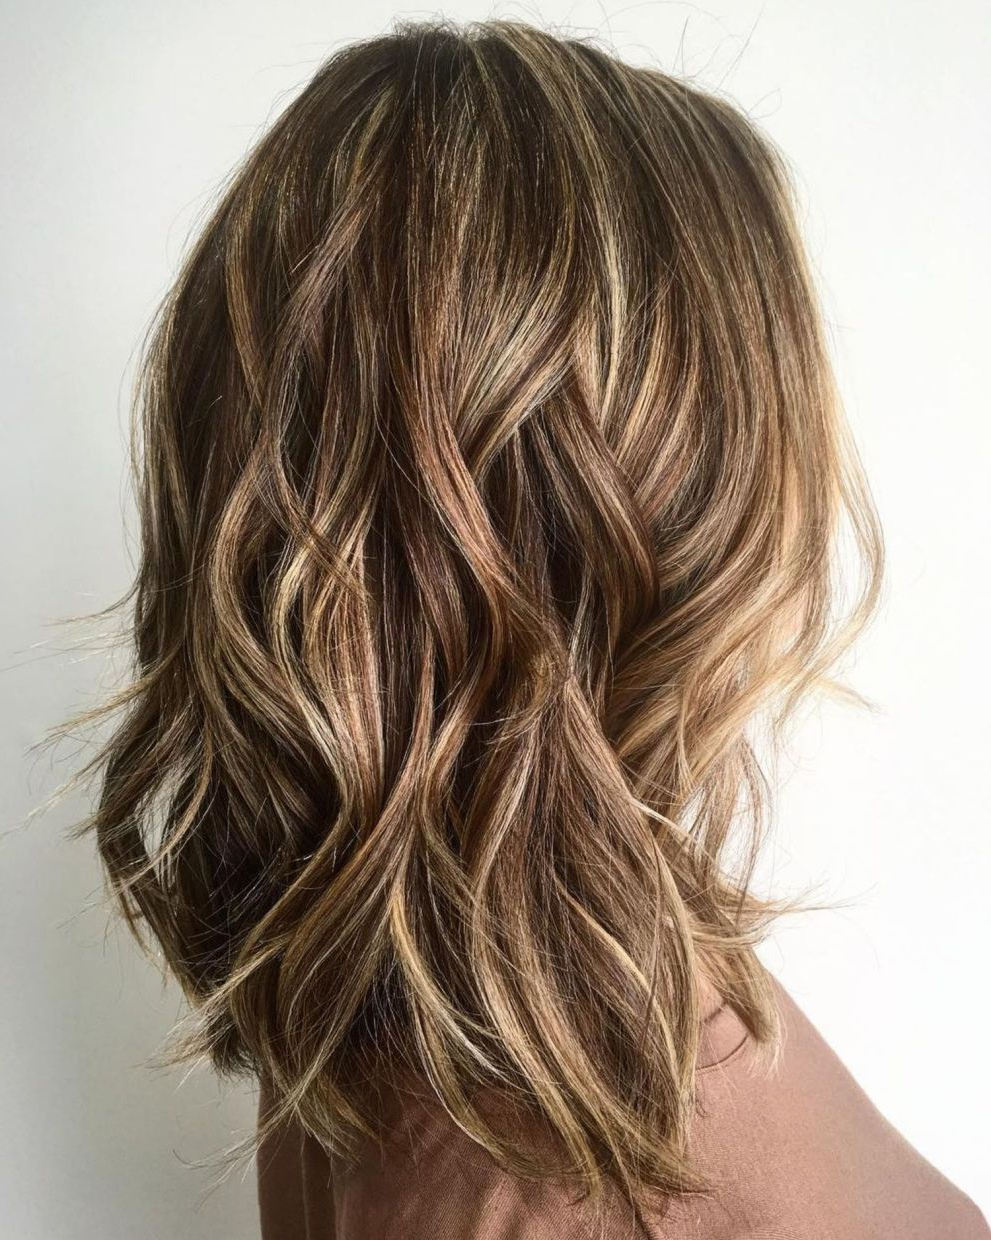 Fashionable Medium Hairstyles And Highlights Intended For 60 Fun And Flattering Medium Hairstyles For Women In (View 7 of 20)